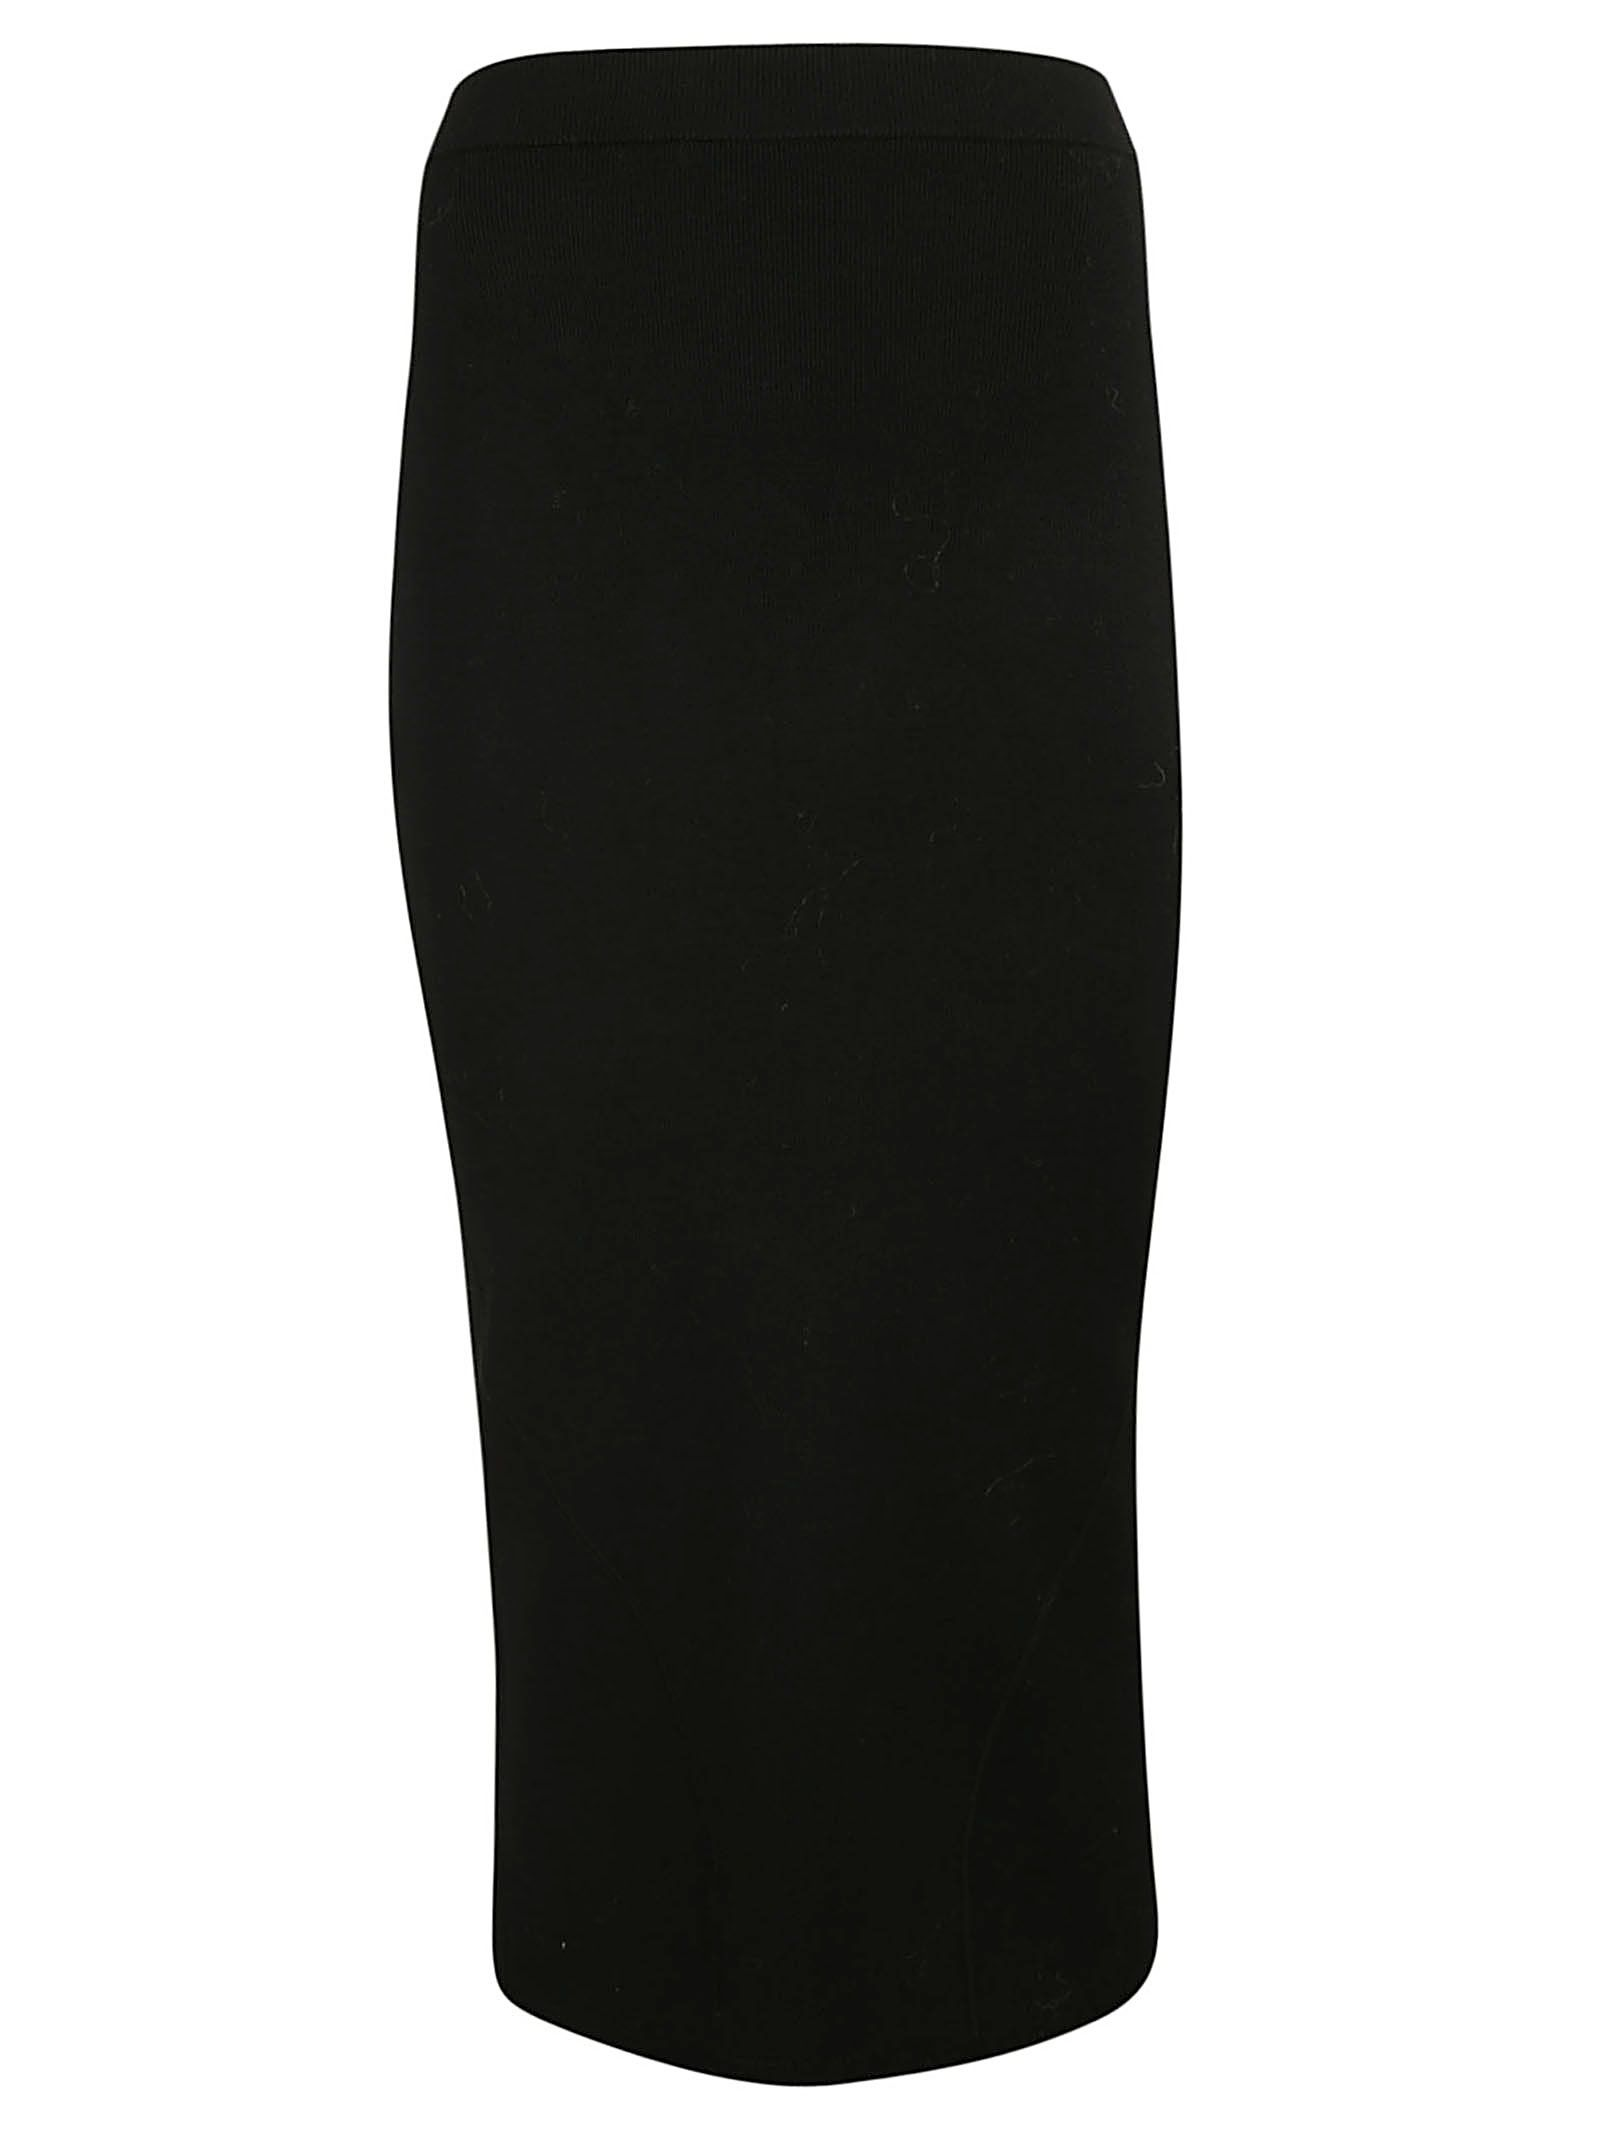 Victoria Beckham Classic Fitted Skirt